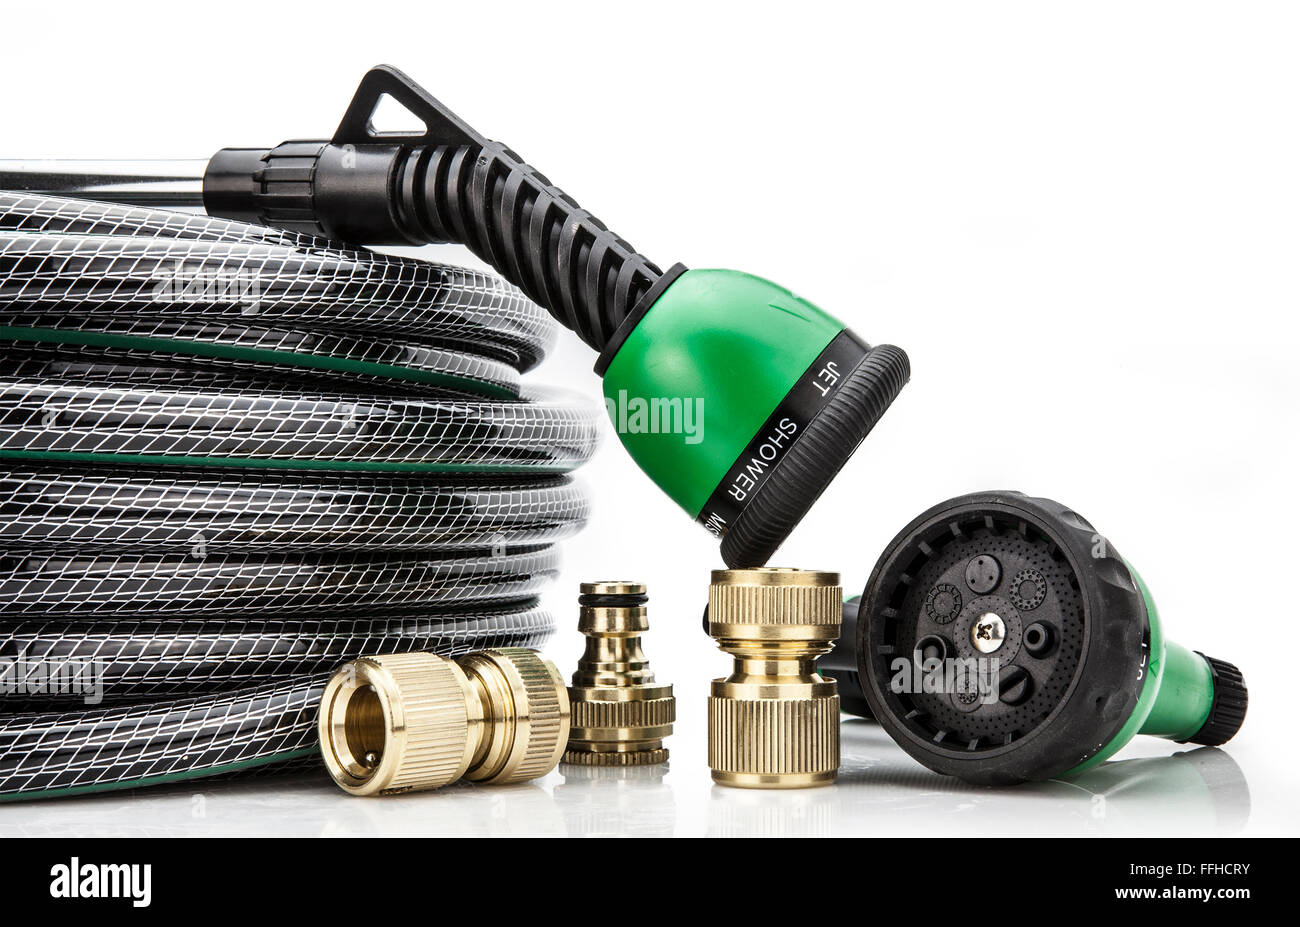 A  garden hose with a sprayer and fittings on a white background - Stock Image